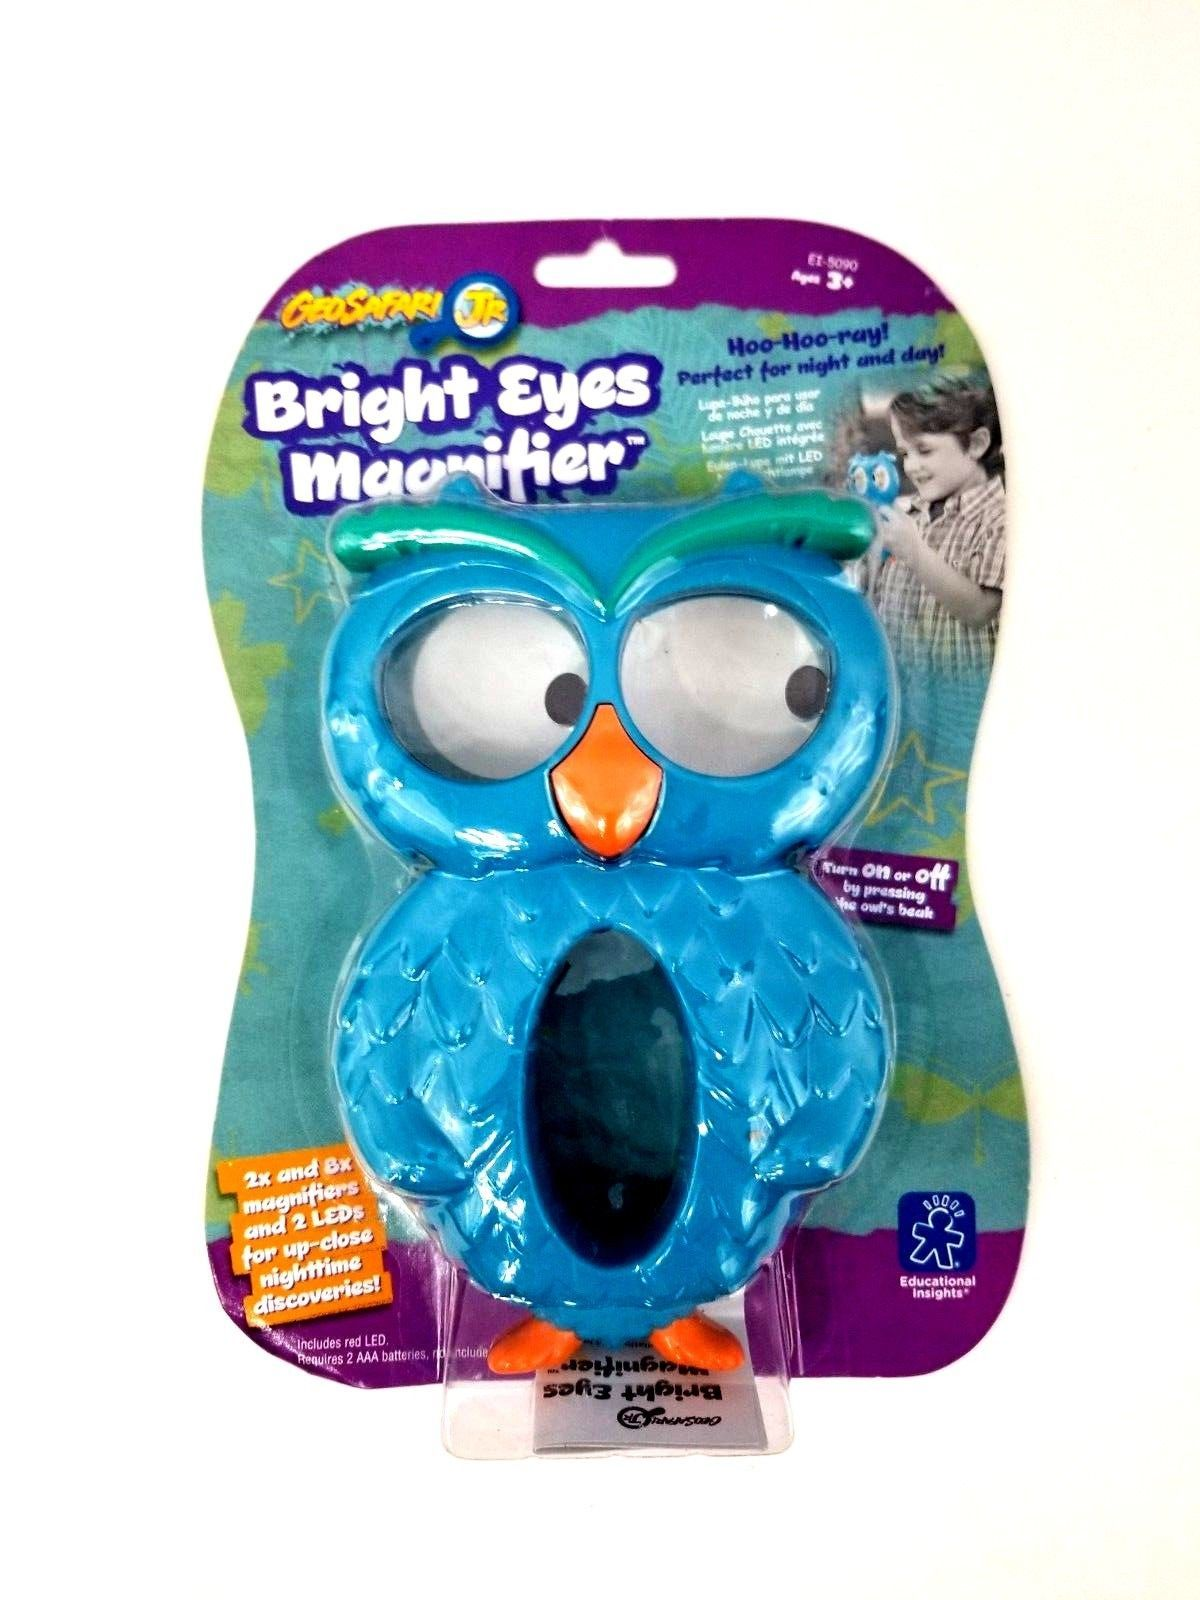 Geosafari JR Bright Eyes Magnifier Owl 2x and 8x Magnifiers and 2 LEDs for Night